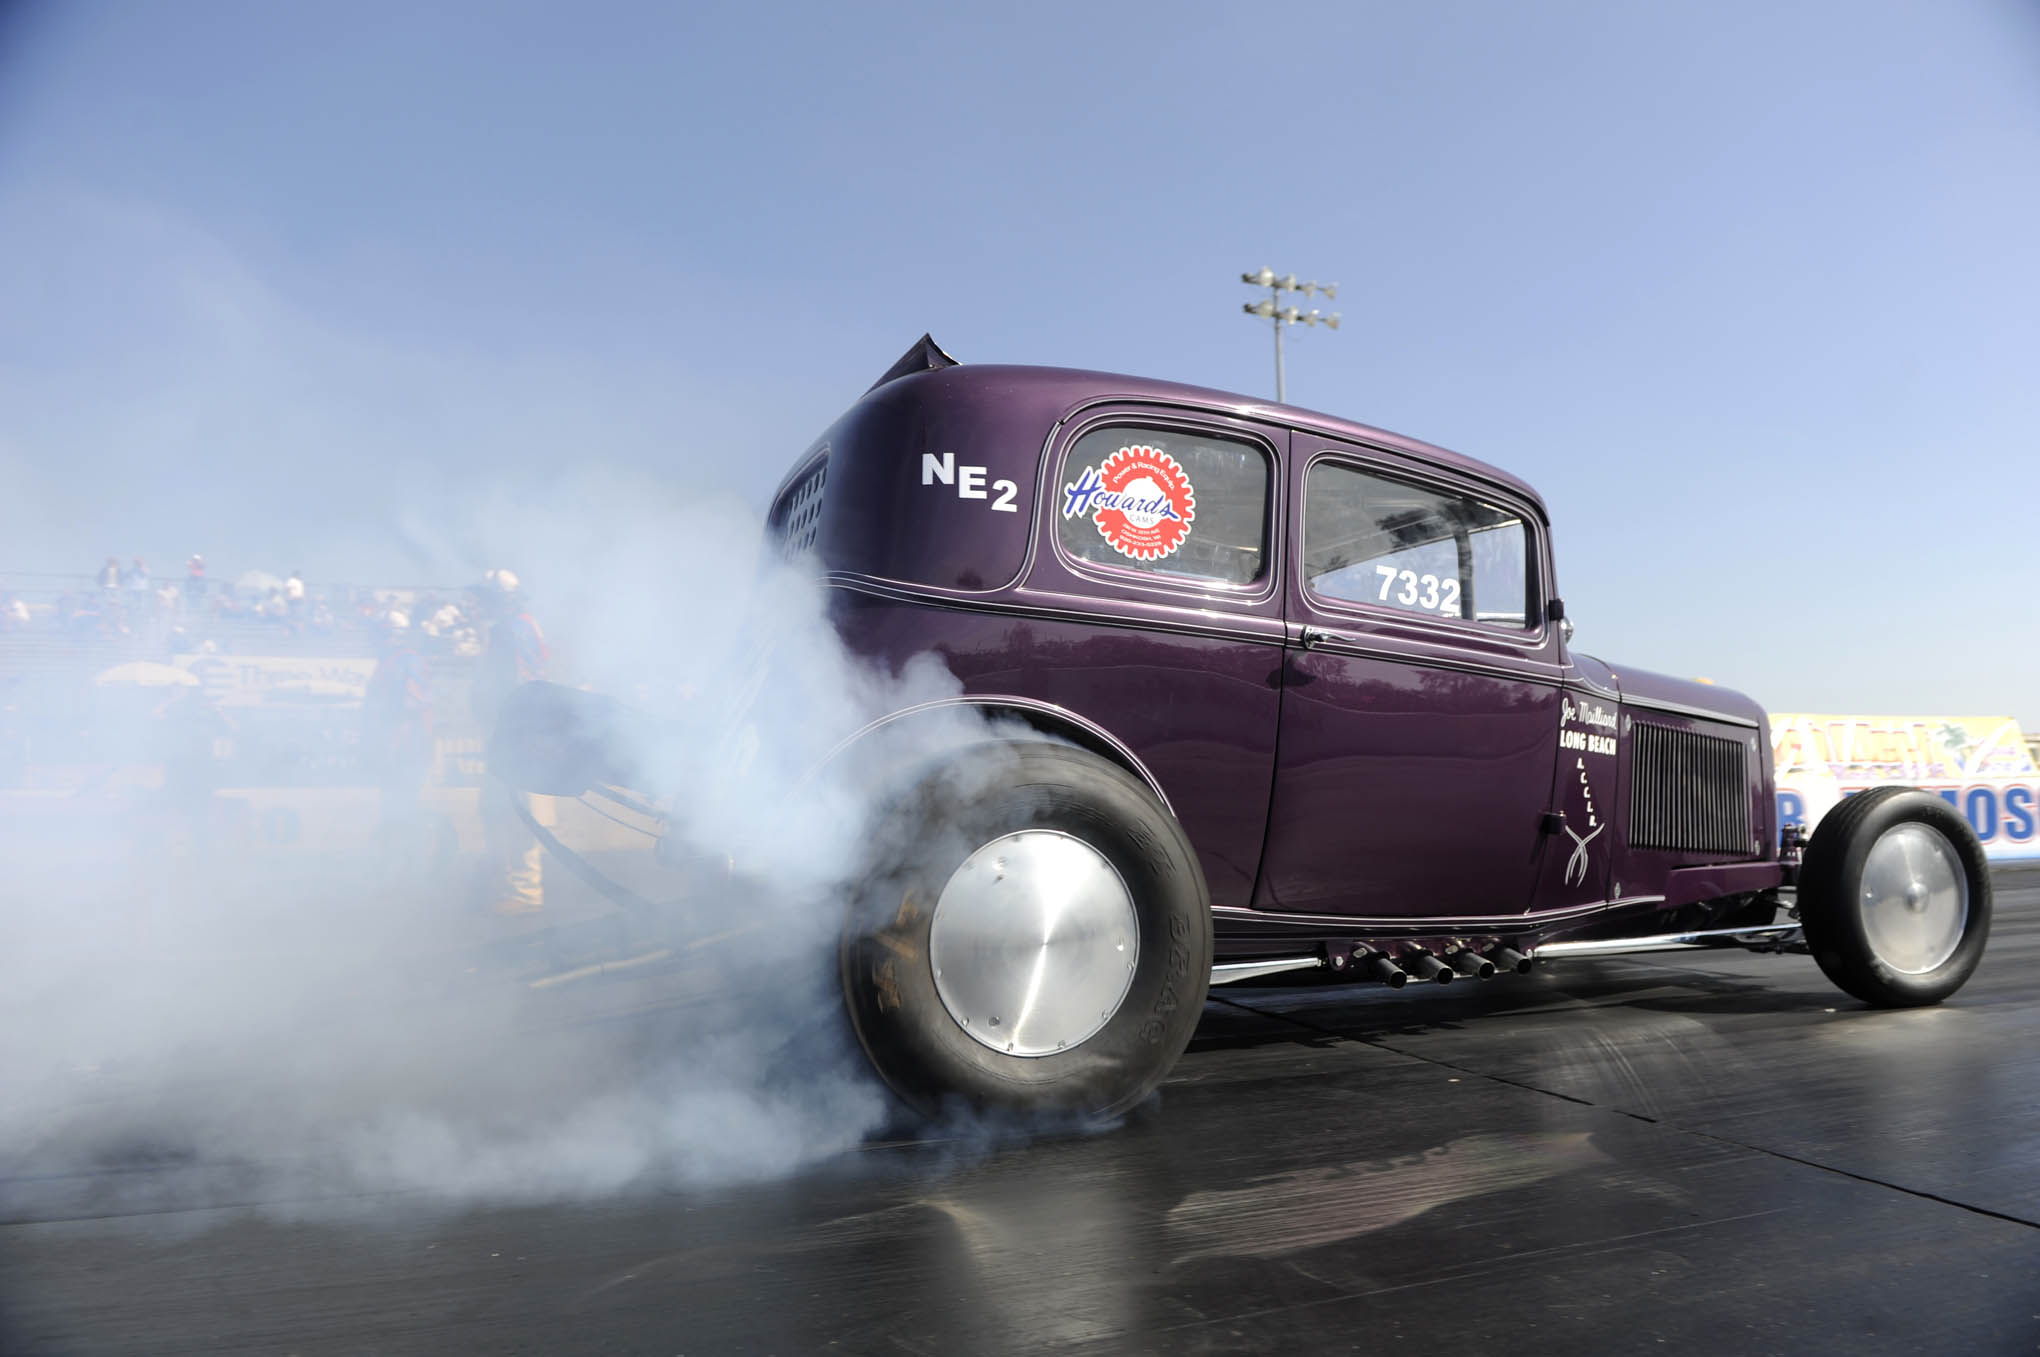 When Bill Workman's Hemi-powered reproduction of the Long Beach Vulcans' club car debuted in HOT ROD, the Vickie seemed way too pretty for serious combat. Bill proved otherwise by battling into the 8.60-indexed Nostalgia Eliminator II final, only to break out in 8.57 seconds (at 154.17) opposite Jeff Crider's right-on 8.606 (149.53).